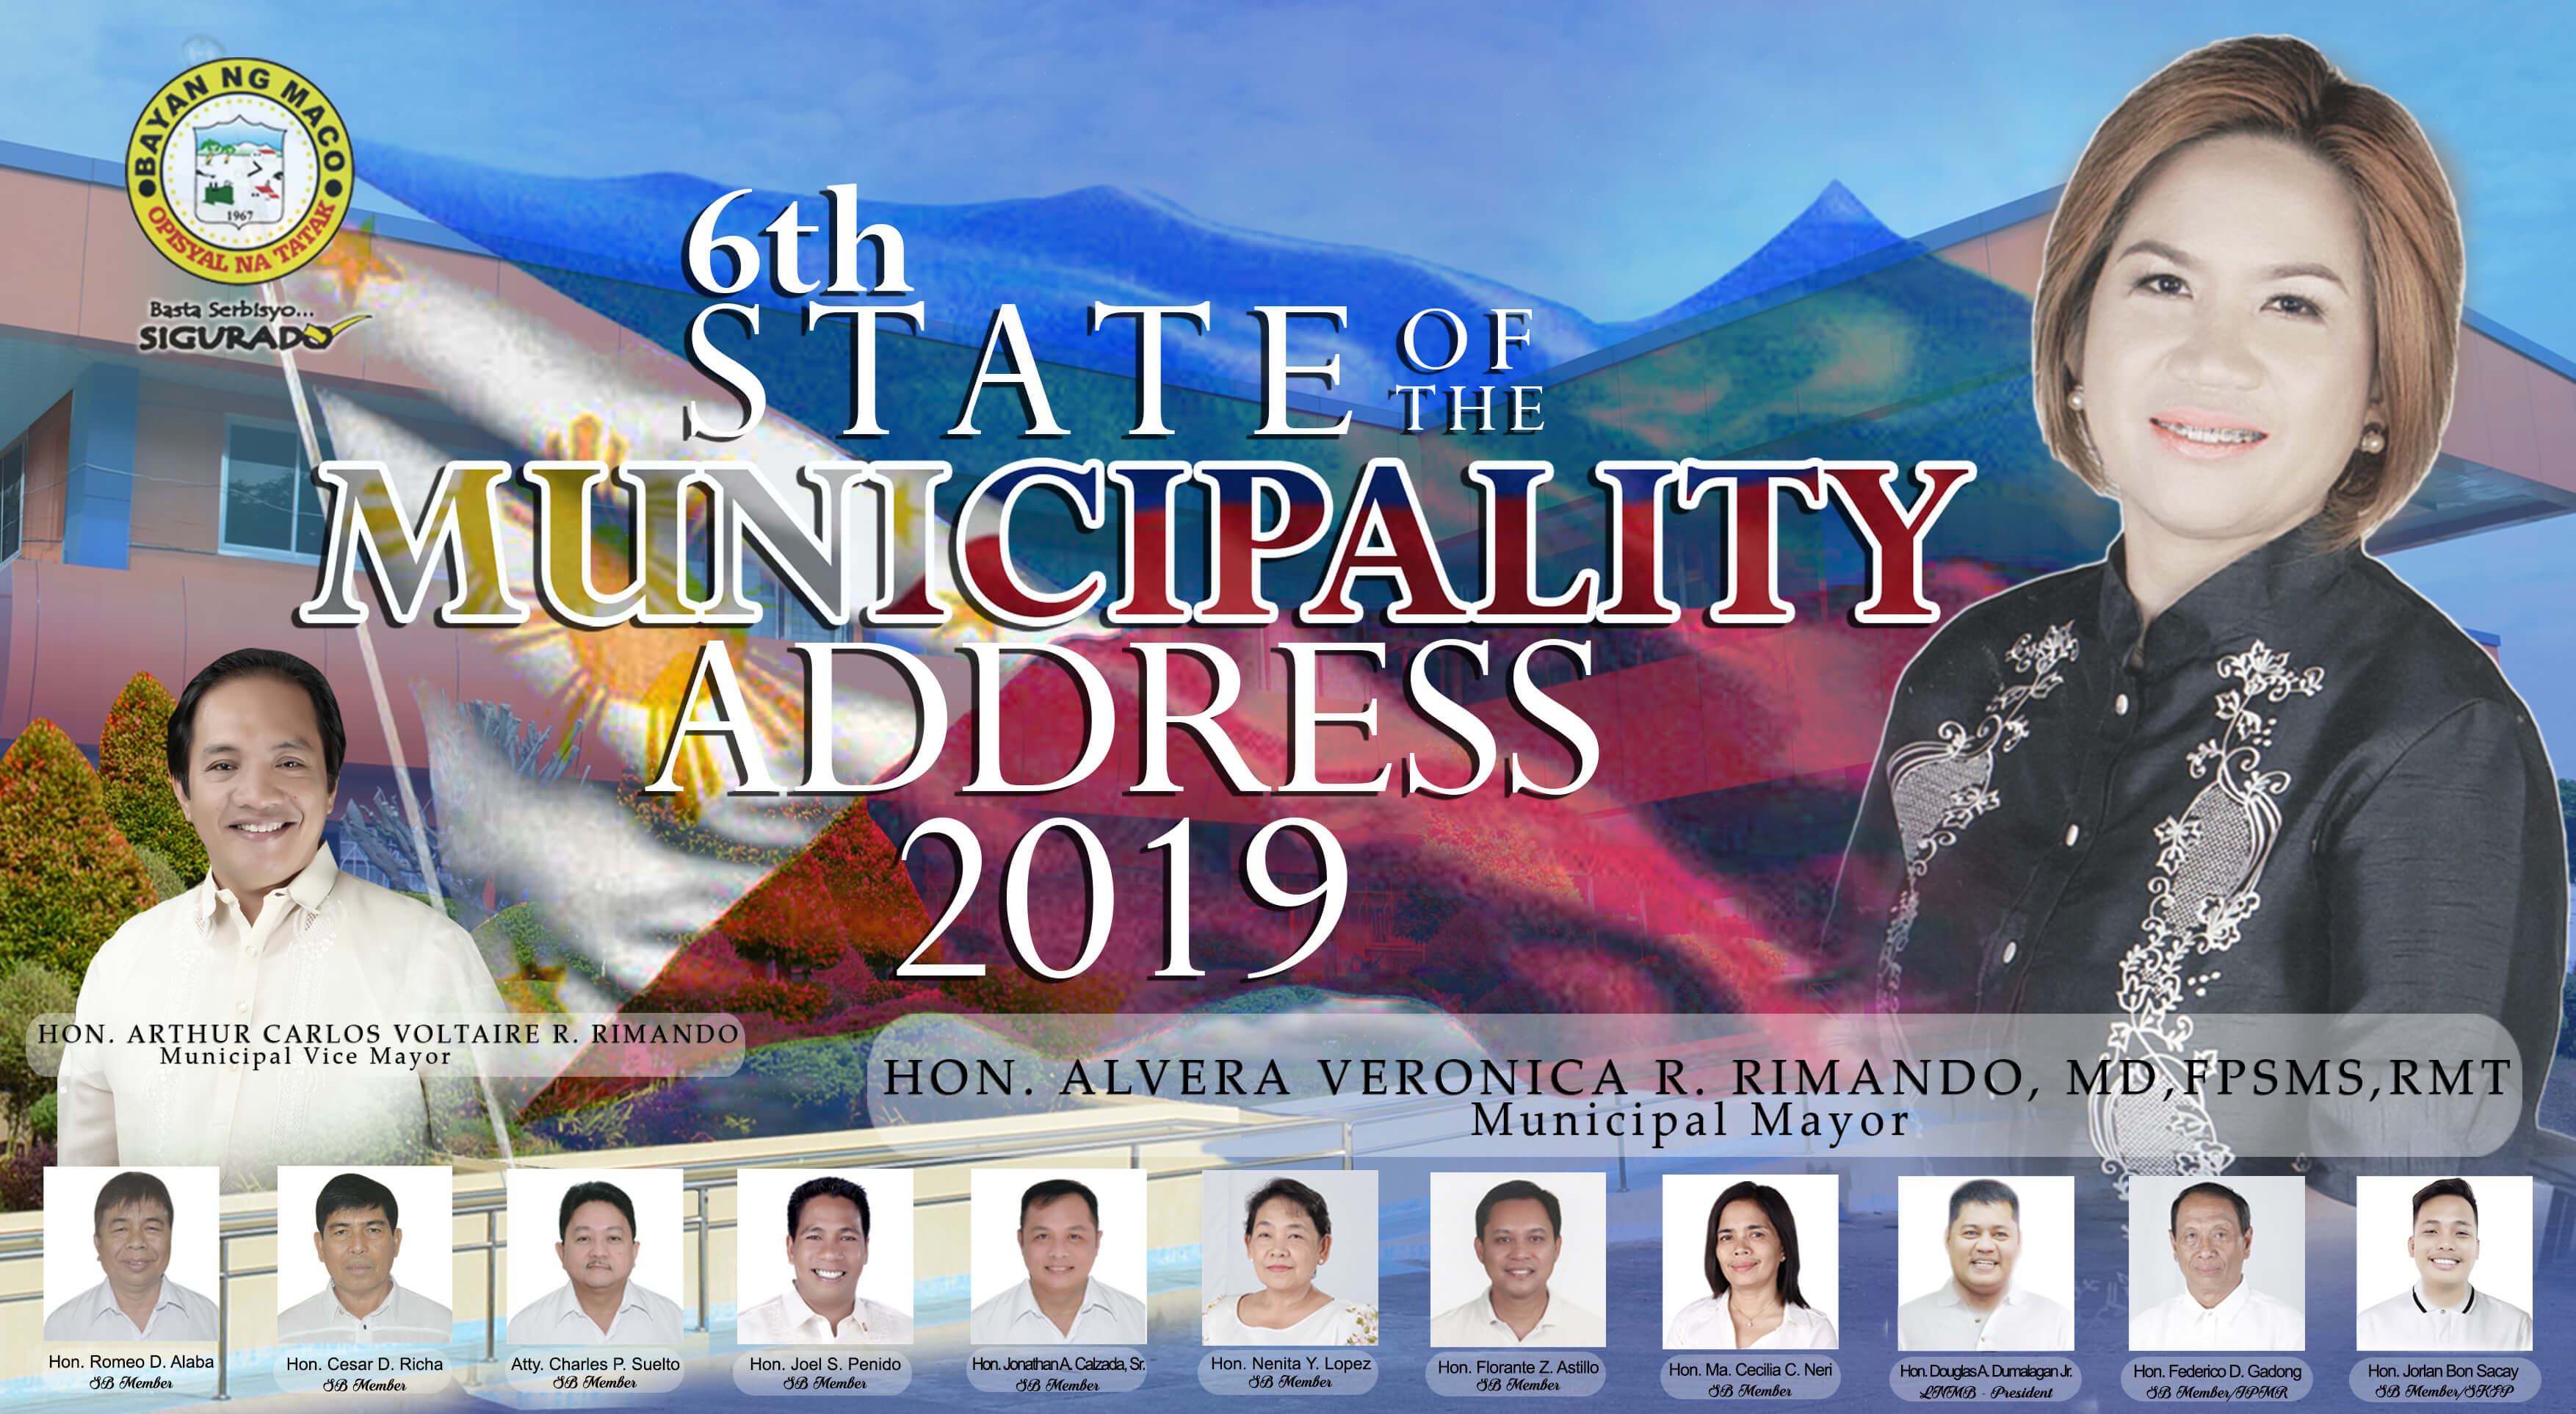 6th State of the Municipality of Hon. Alvera Veronica R. Rimando, M.D., FPSMS, RMT